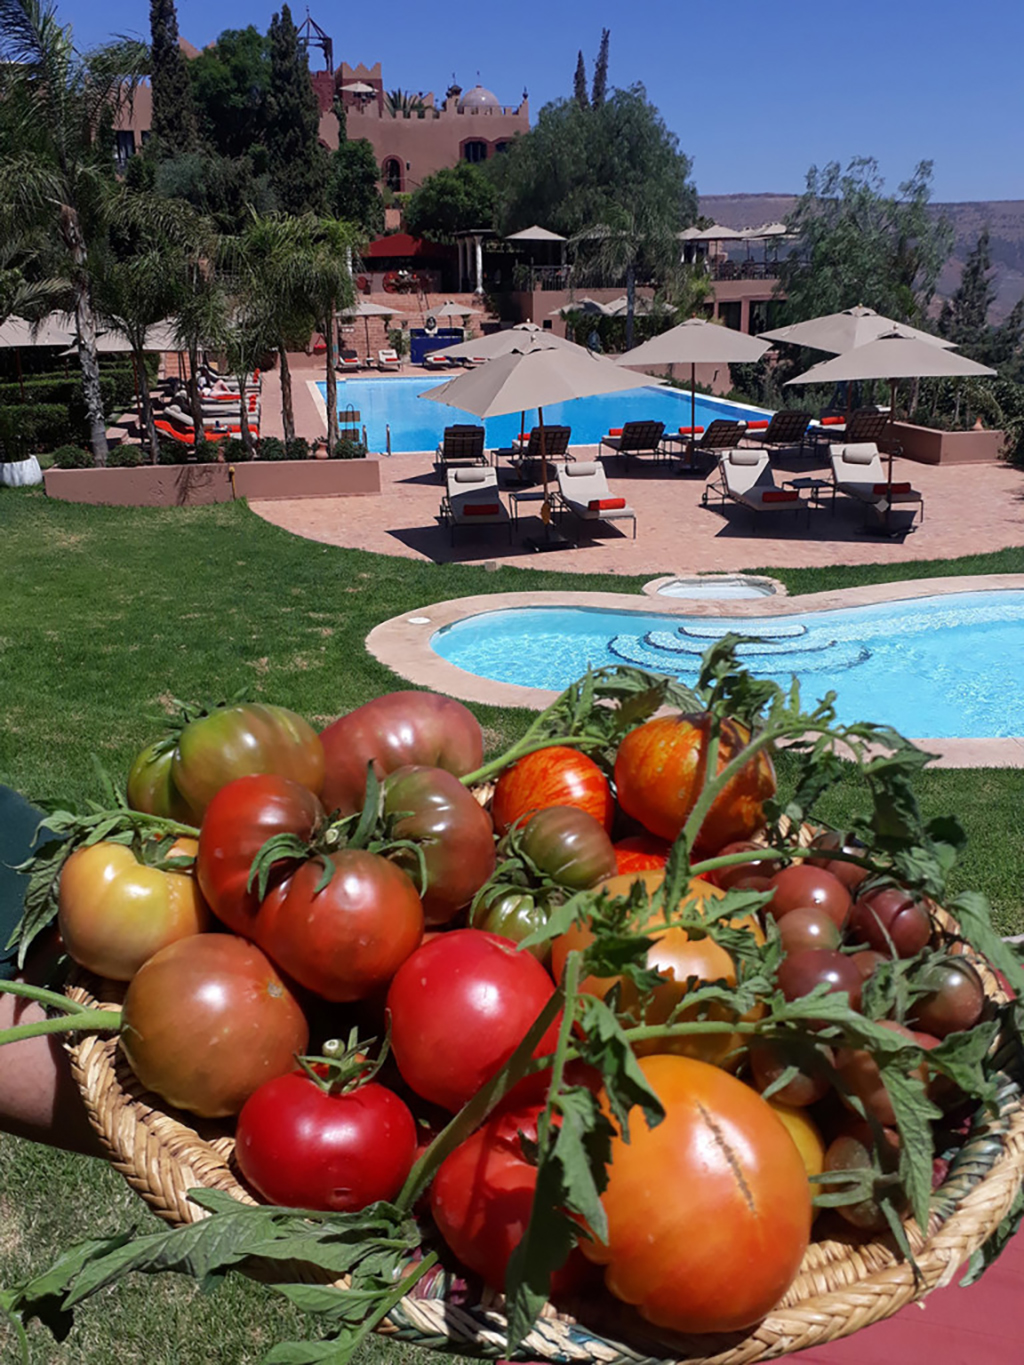 tomatoes by the pool